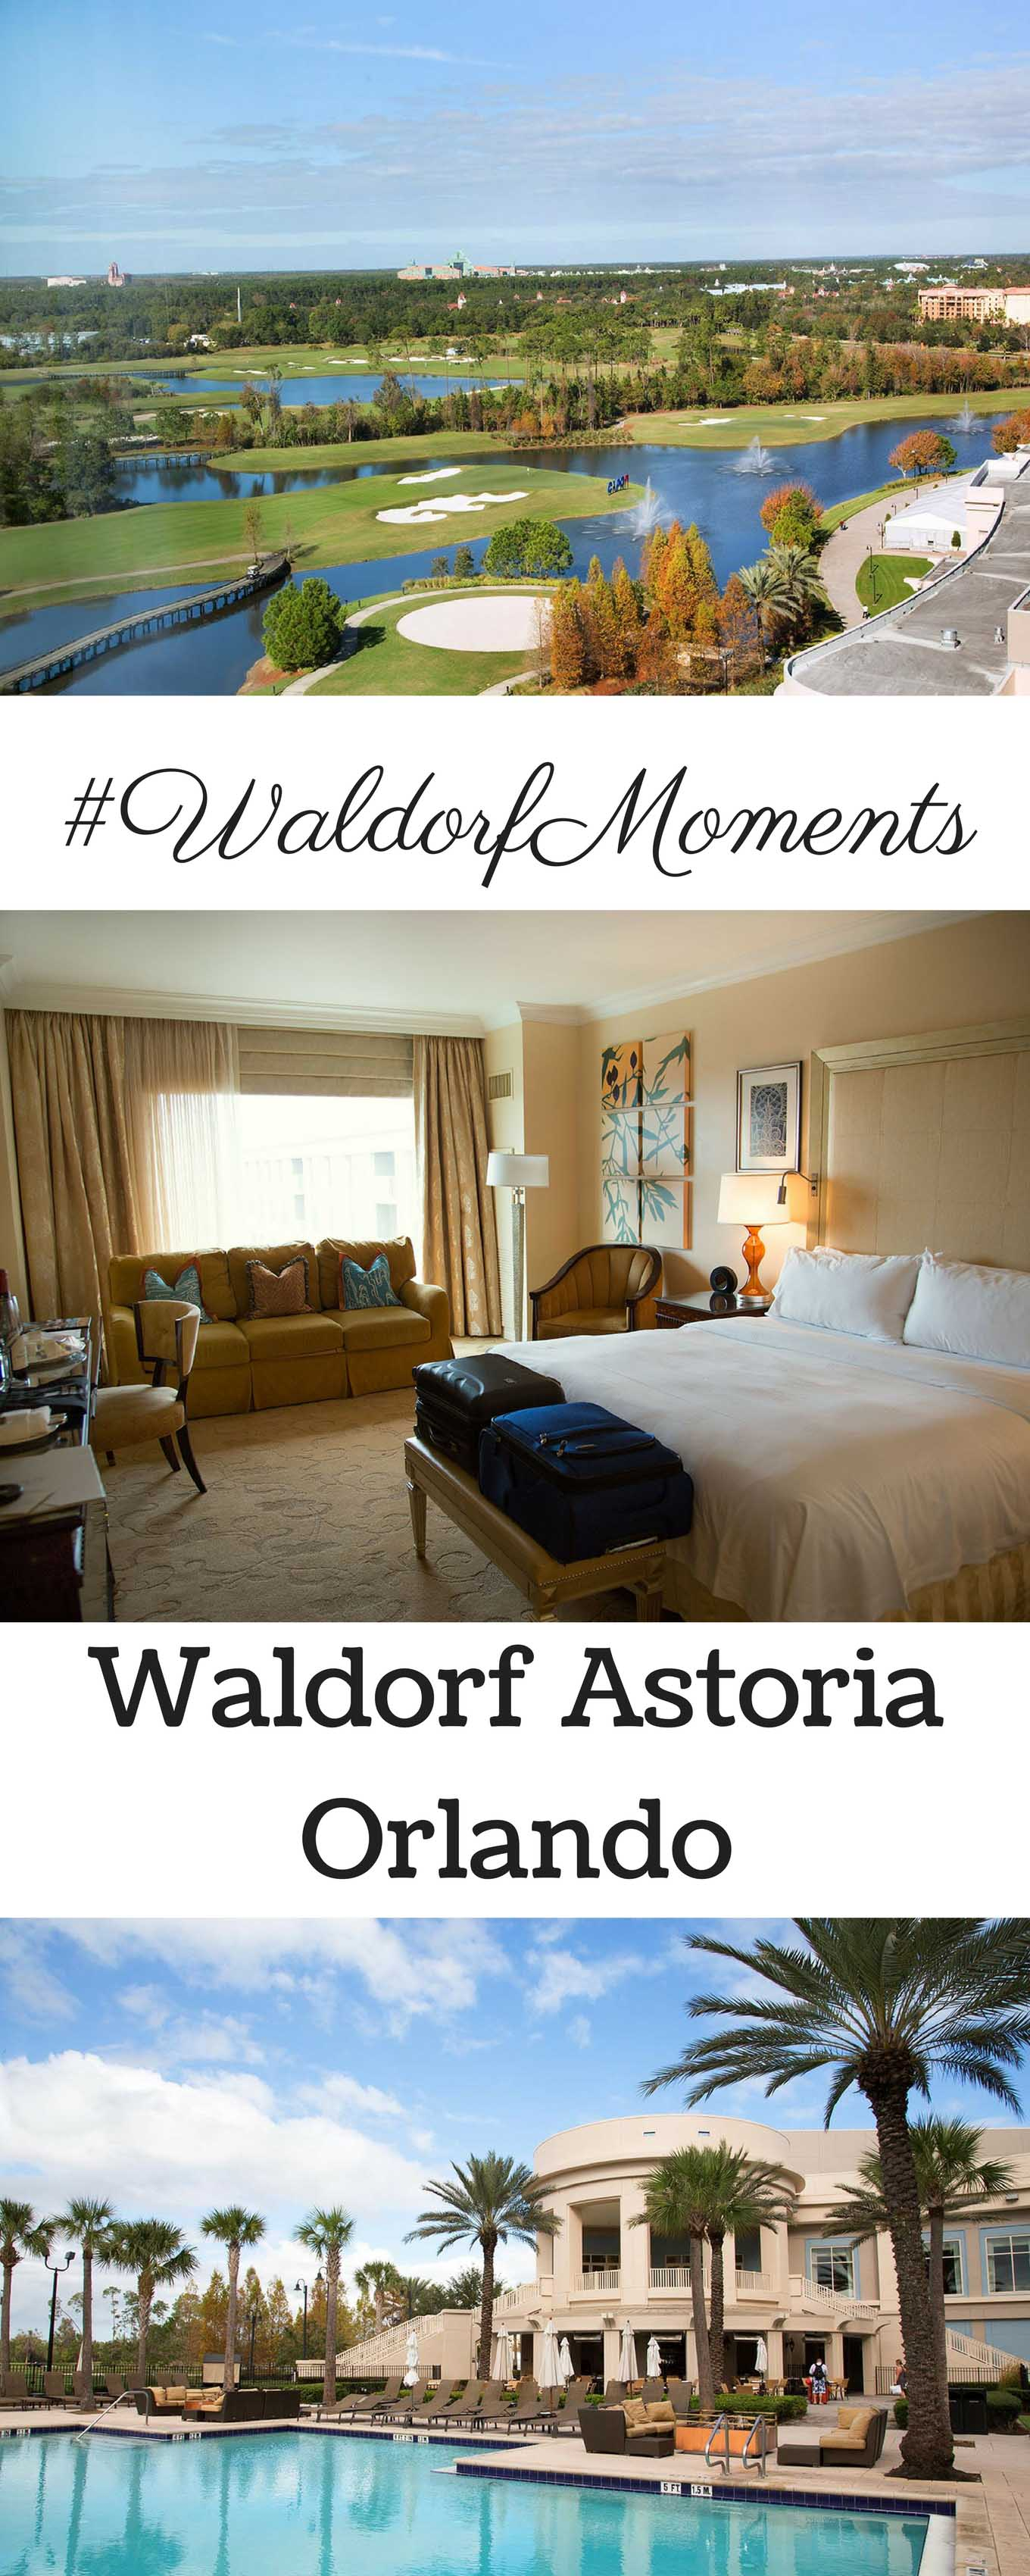 Your stay at the Waldorf Astoria Orlando will be filled with one delicious #WaldorfMoment after another!